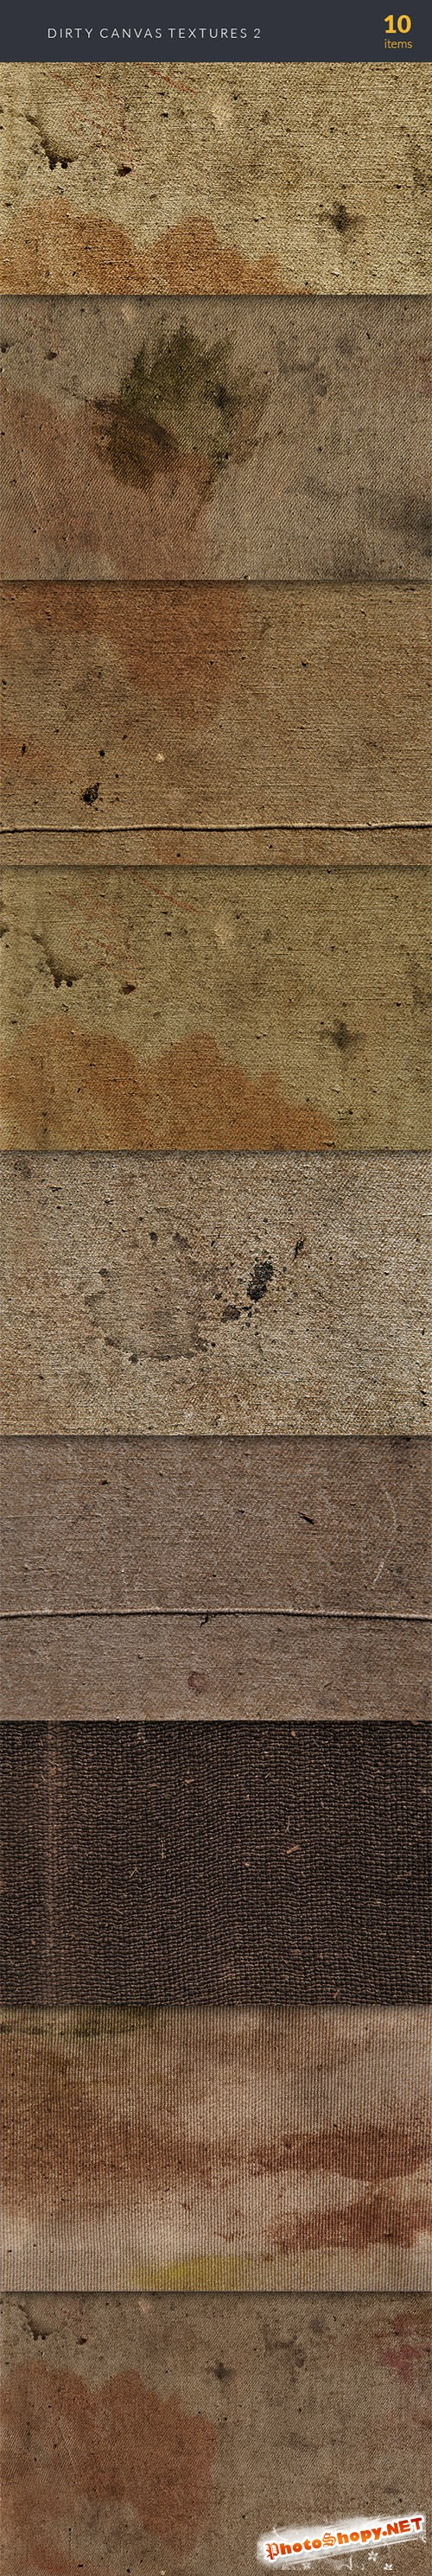 Dirty Canvas Textures Set 2